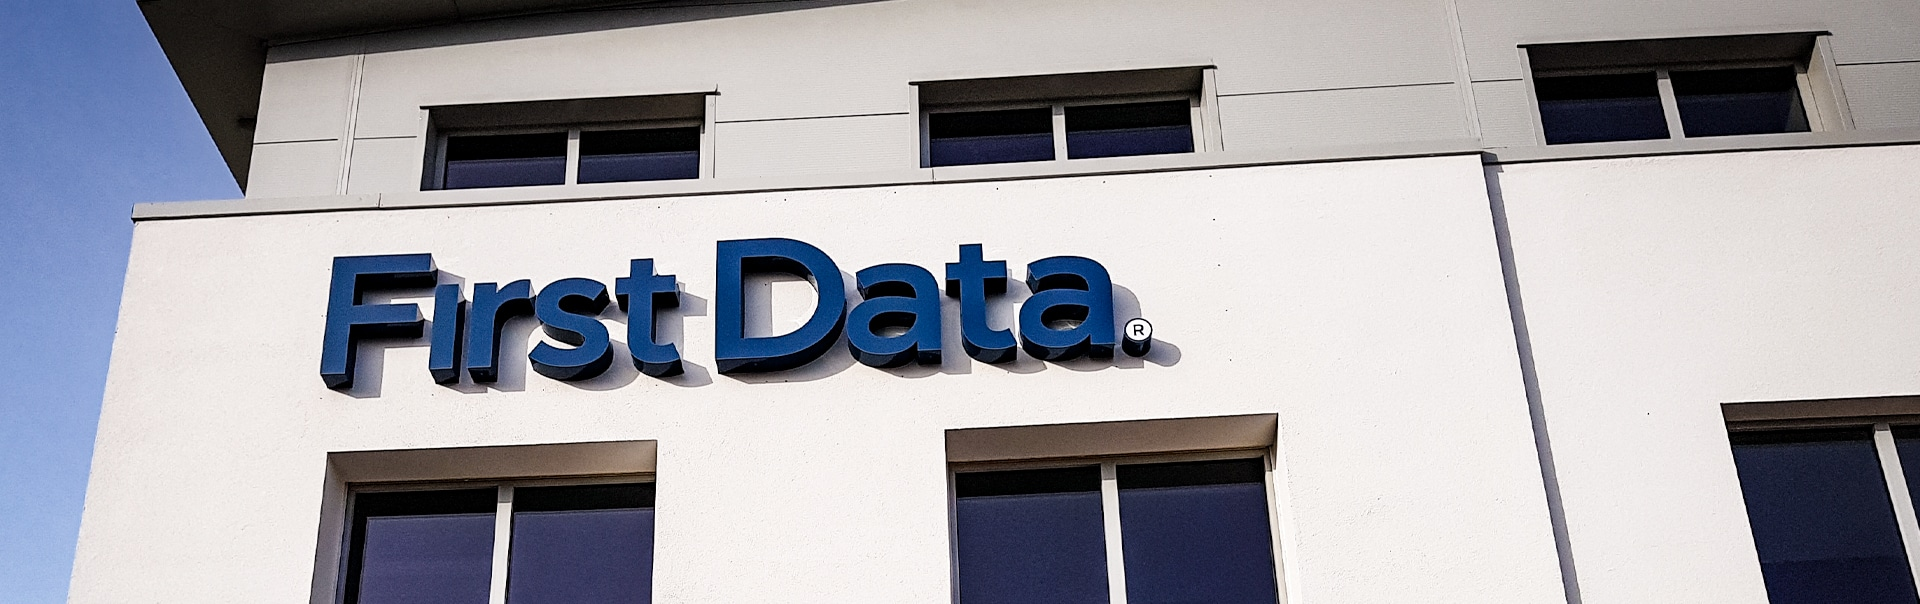 First_Data_Skyline_Signage